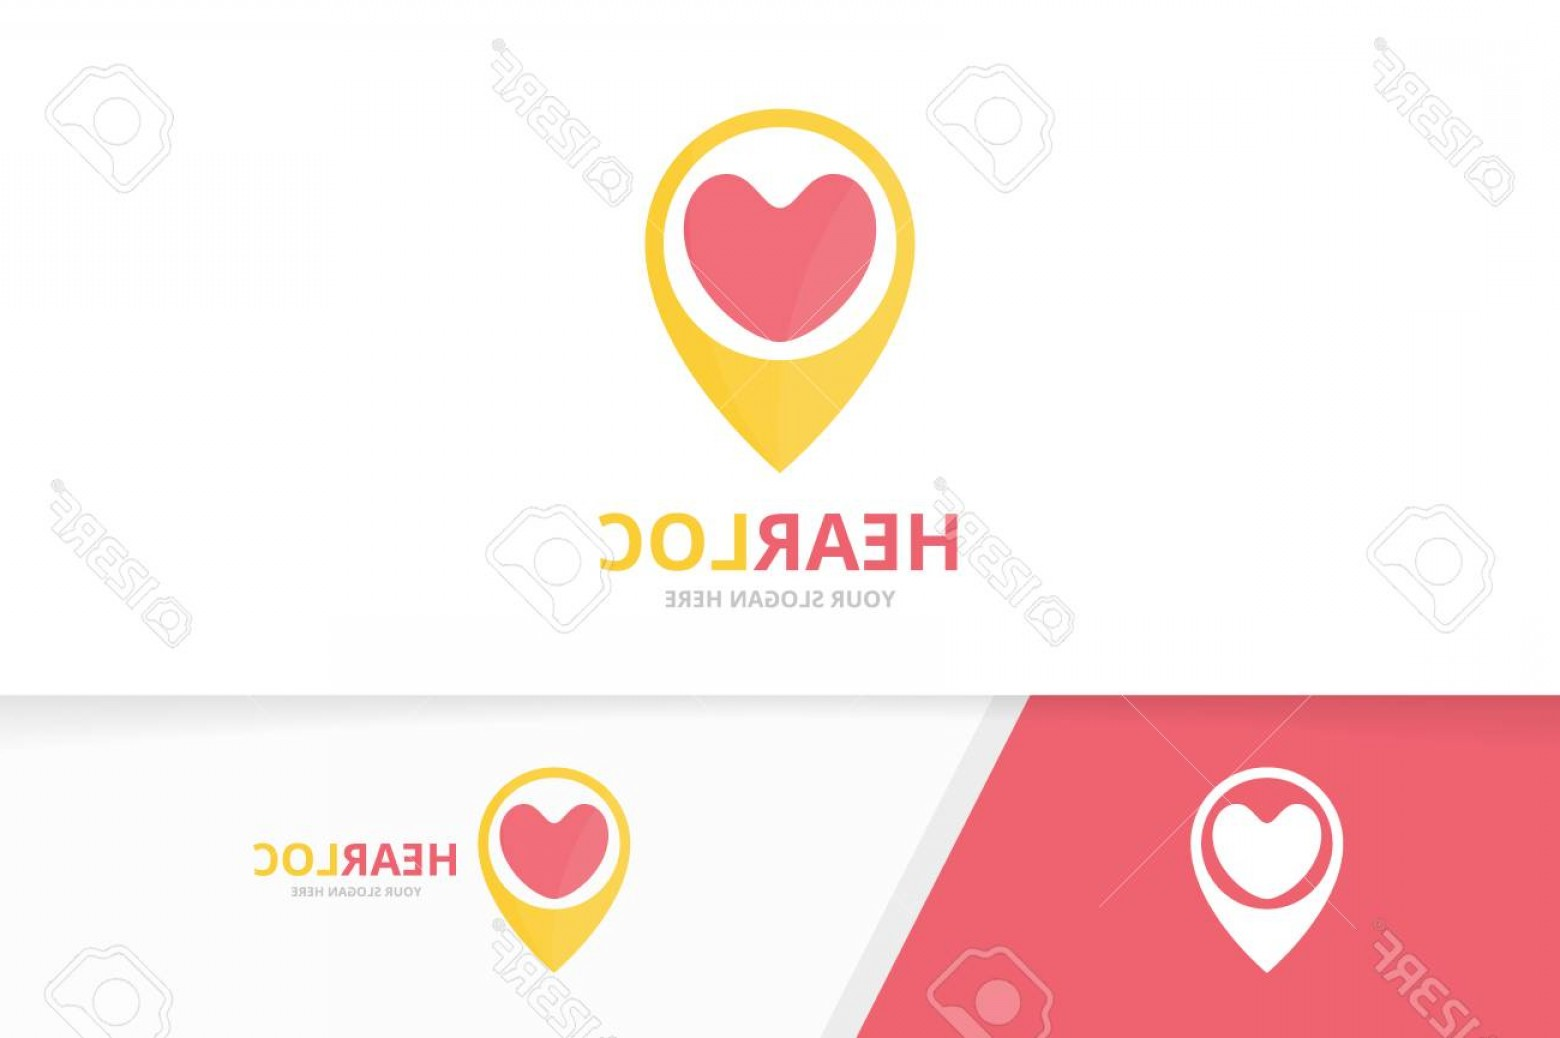 Unique Pointer Vector: Photostock Vector Vector Heart And Map Pointer Logo Combination Love And Gps Locator Symbol Or Icon Unique Romantic An